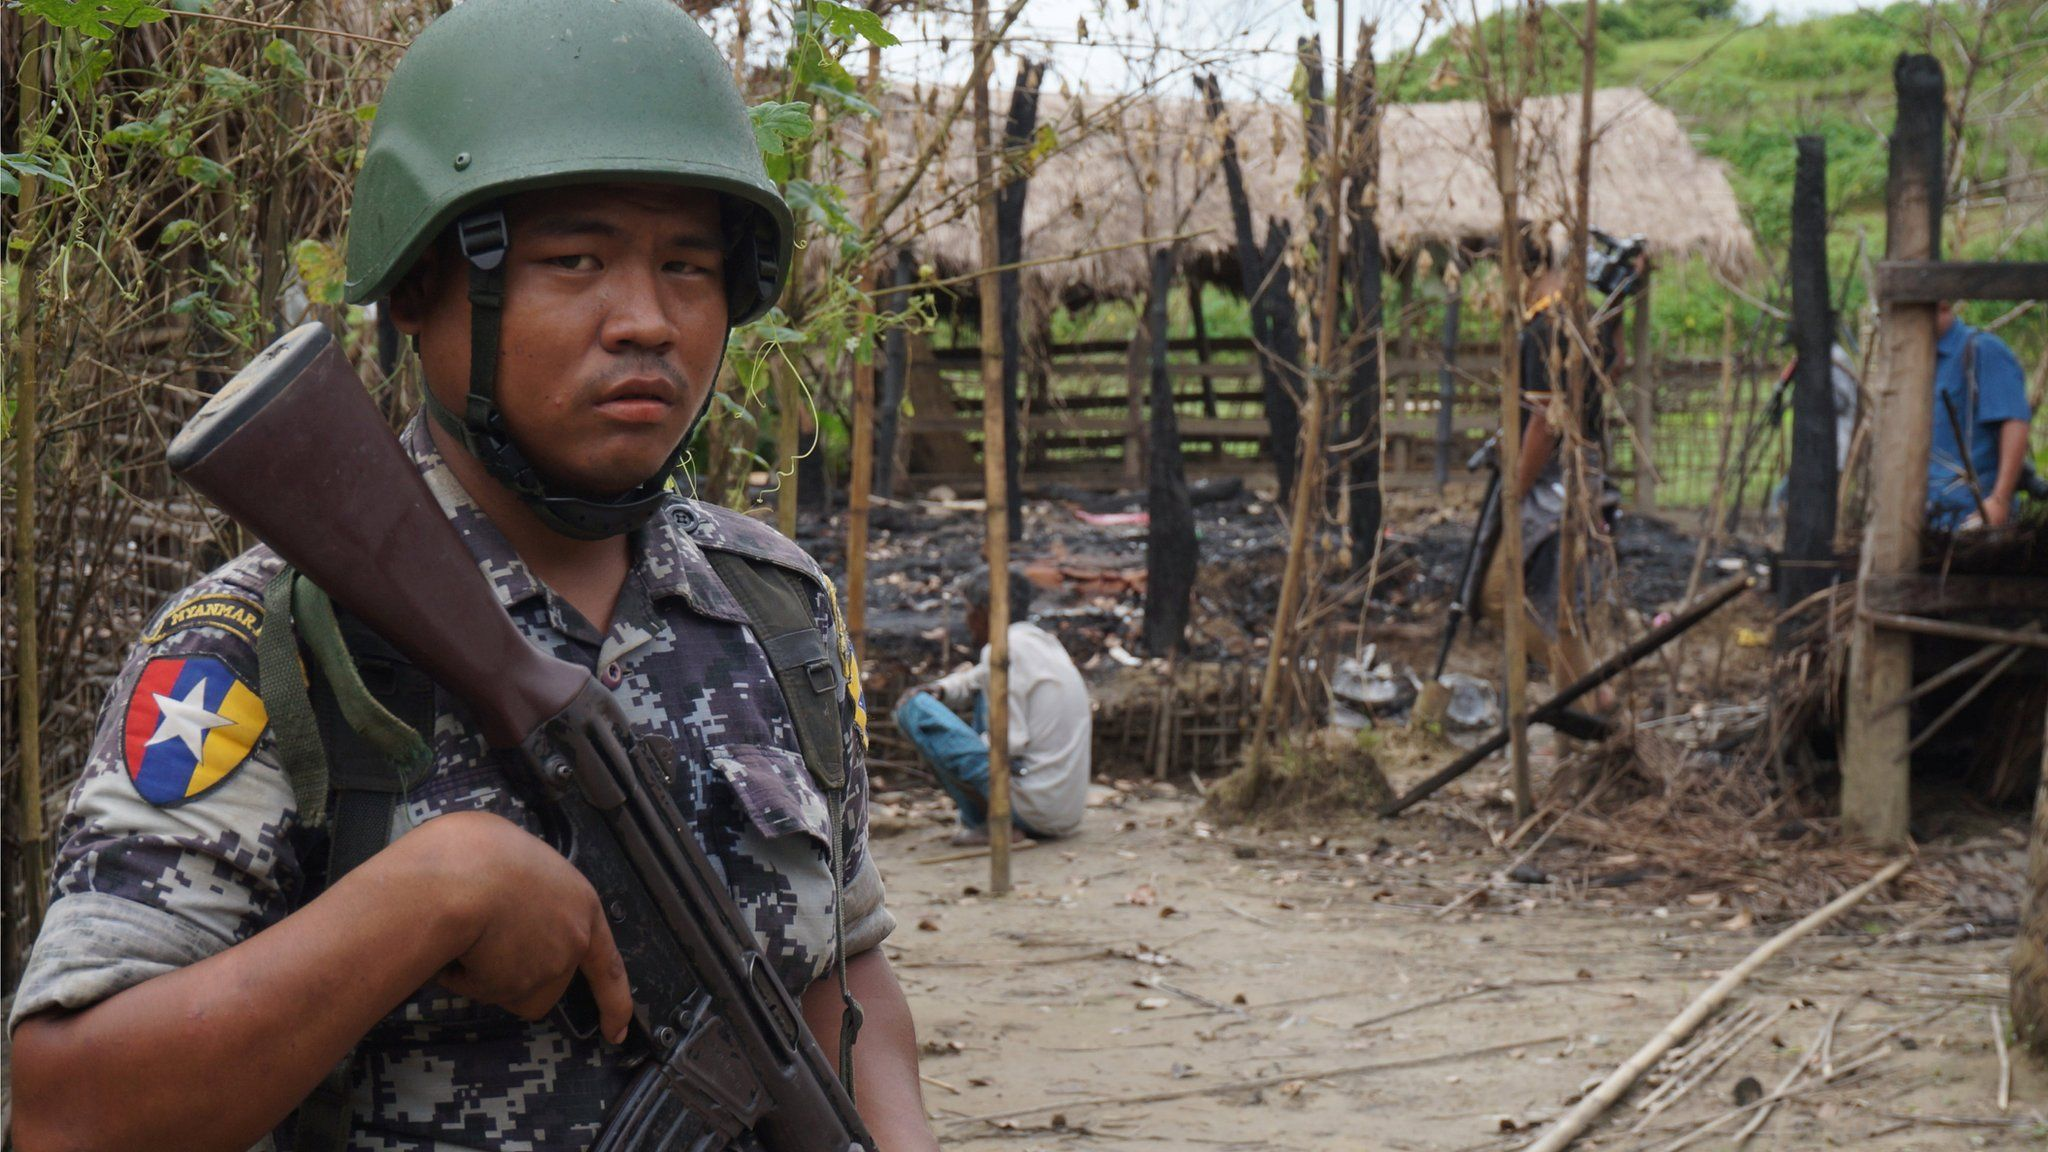 A Myanmar border guard police officer stands guard in front of the remains of a house burned down in a clash between suspected militants and security forces in Tin May village, Buthidaung township, northern Rakhine state, Myanmar 14 July 2017